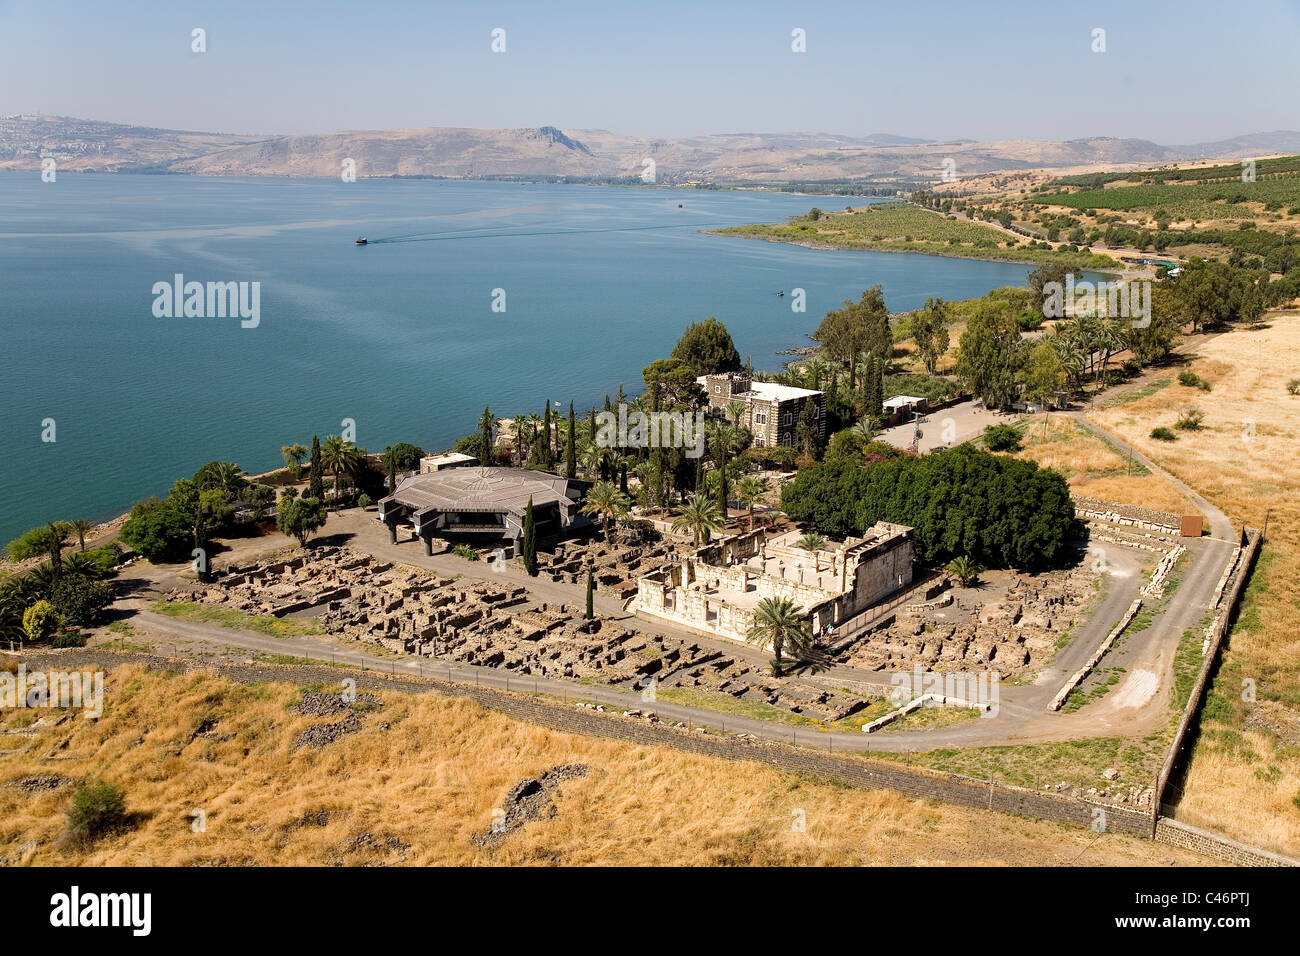 Aerial photograph of the ruins of Capernaum in the sea of Galilee Stock Photo